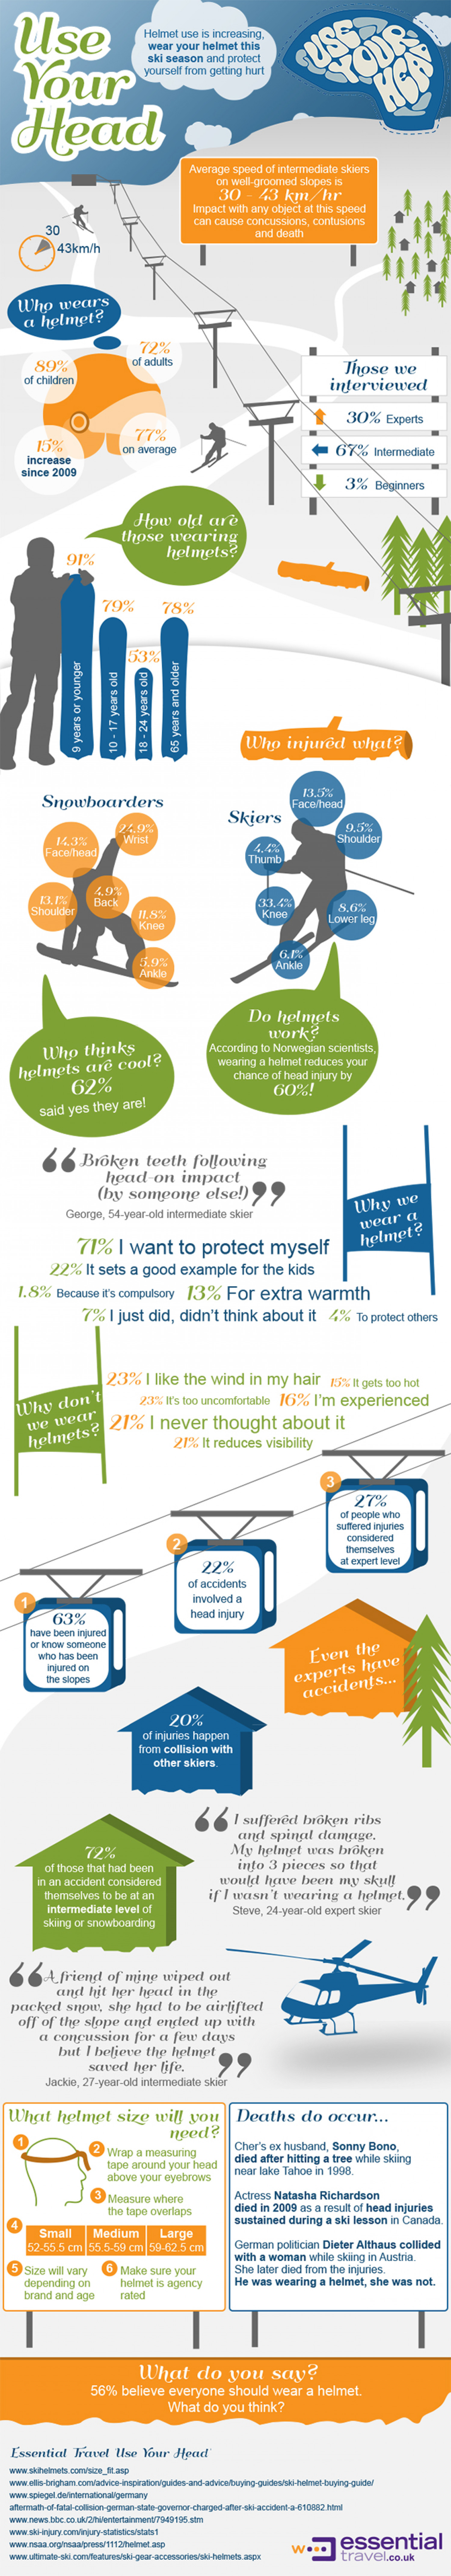 Use Your Head - Why you should wear a helmet Infographic